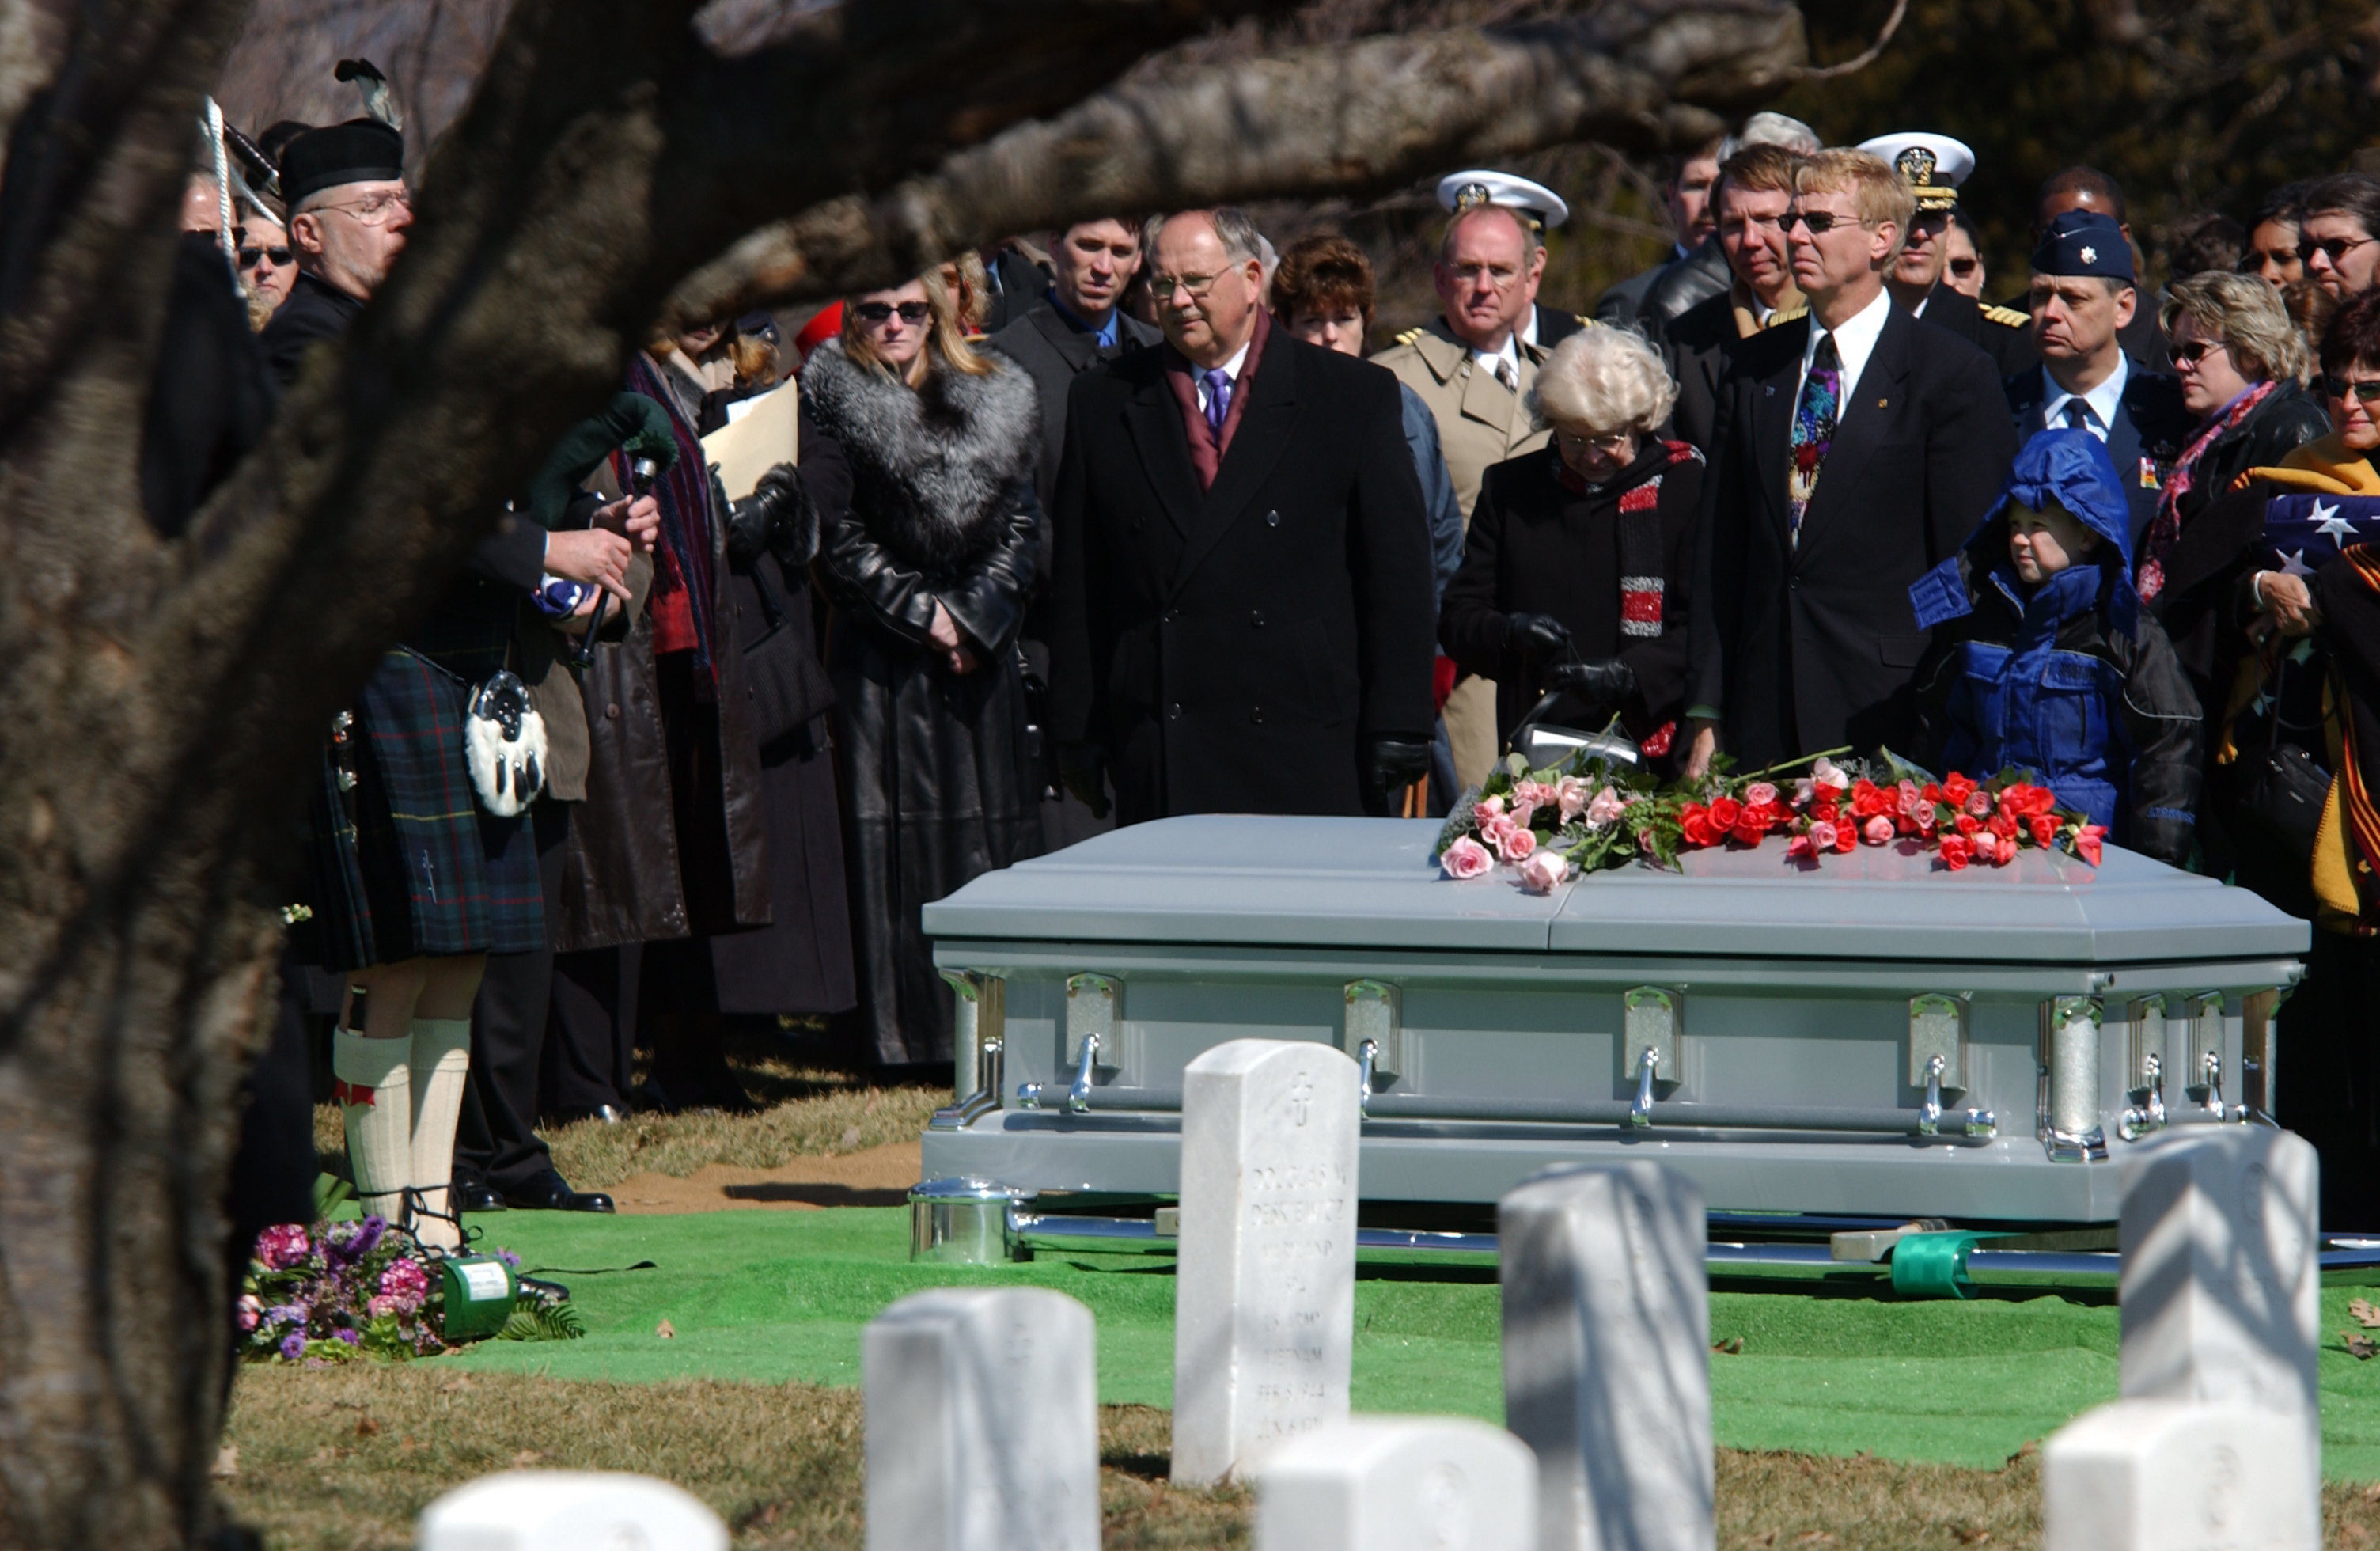 Http Commons Wikimedia Org Wiki File Space Shuttle Columbia Funeral G Jpg